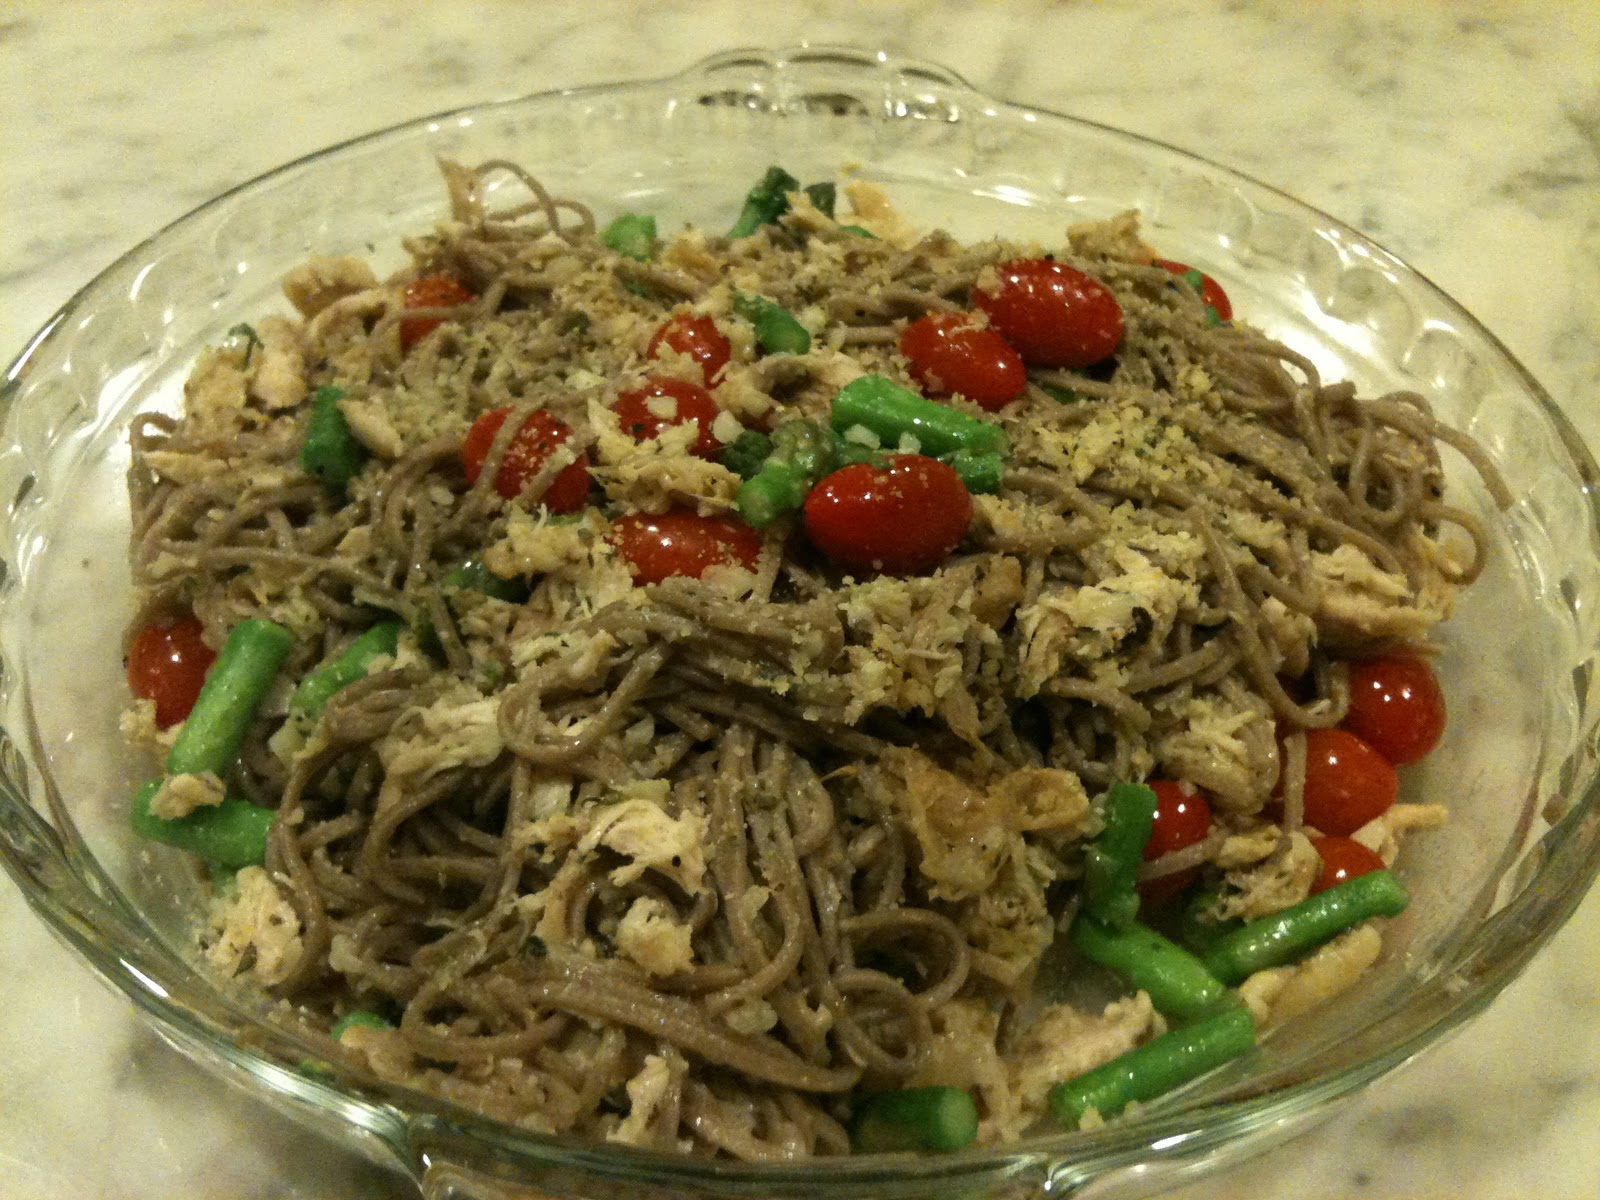 Parmesan Garlic Soba Noodles with Chicken, Tomatoes, and Asparagus